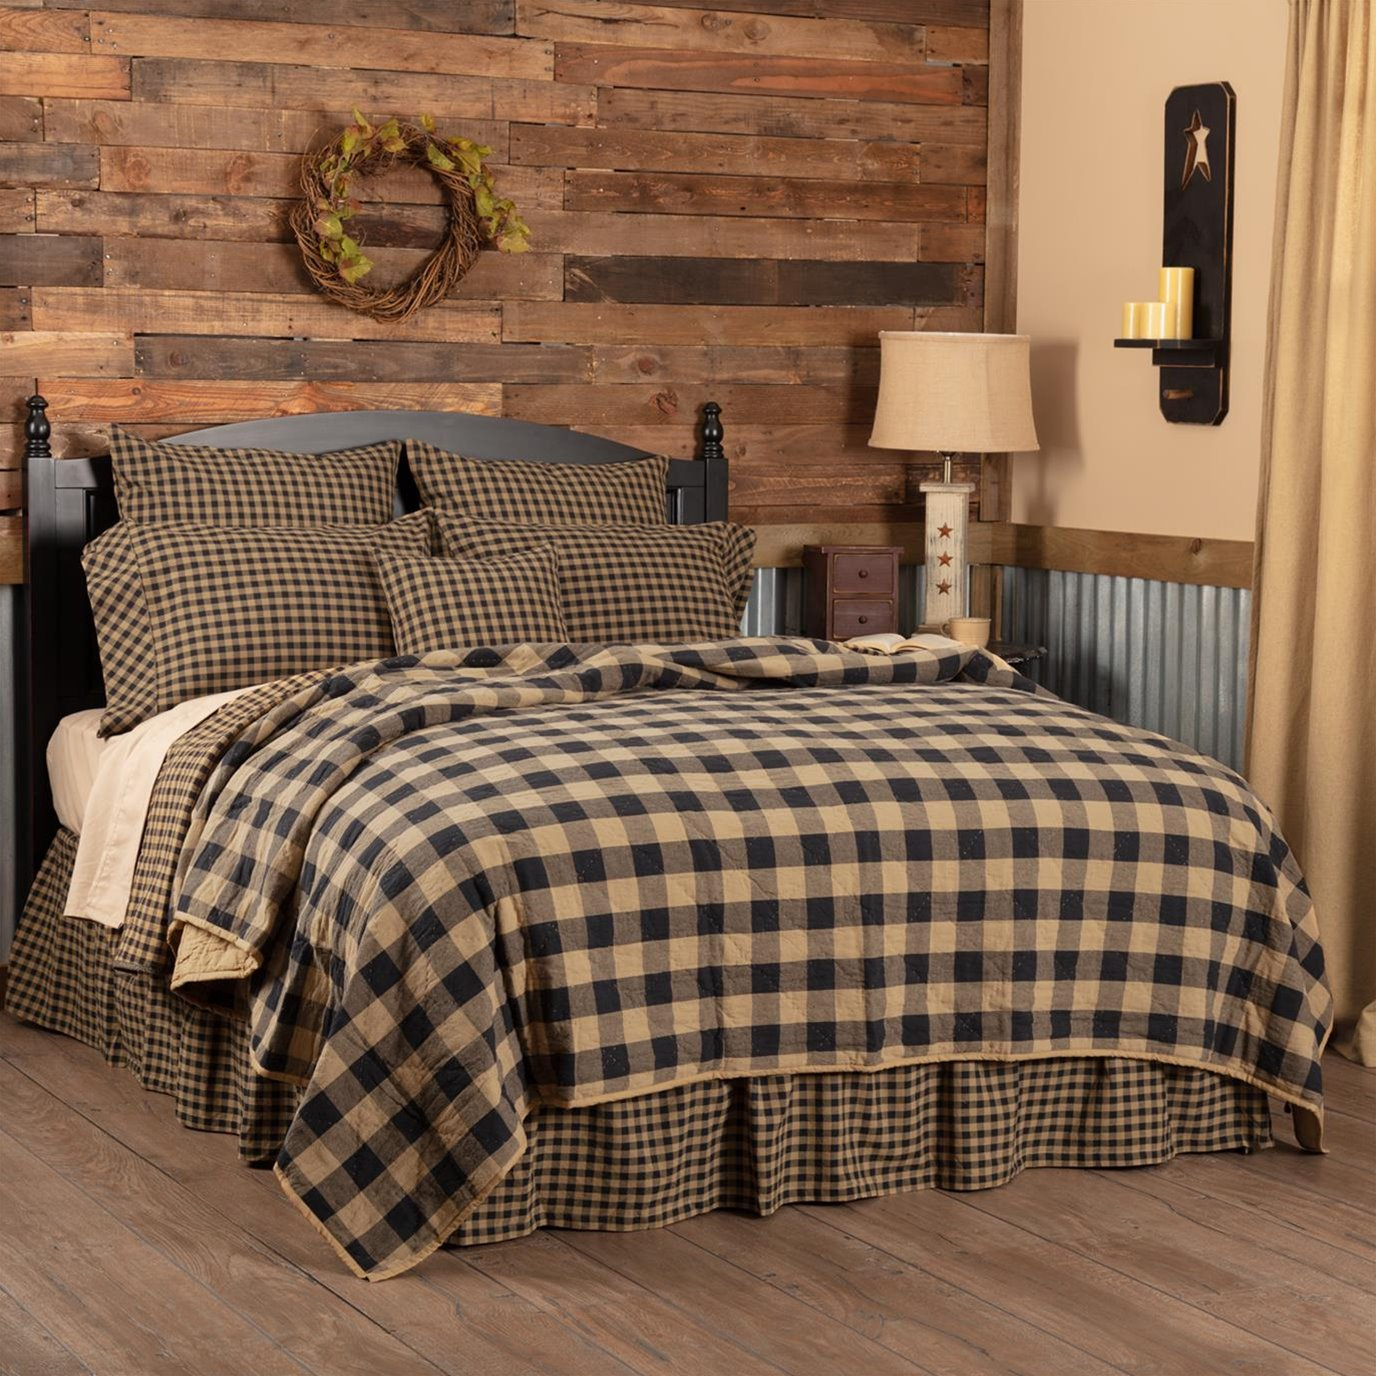 Black Check Queen Quilt Coverlet 90Wx90L